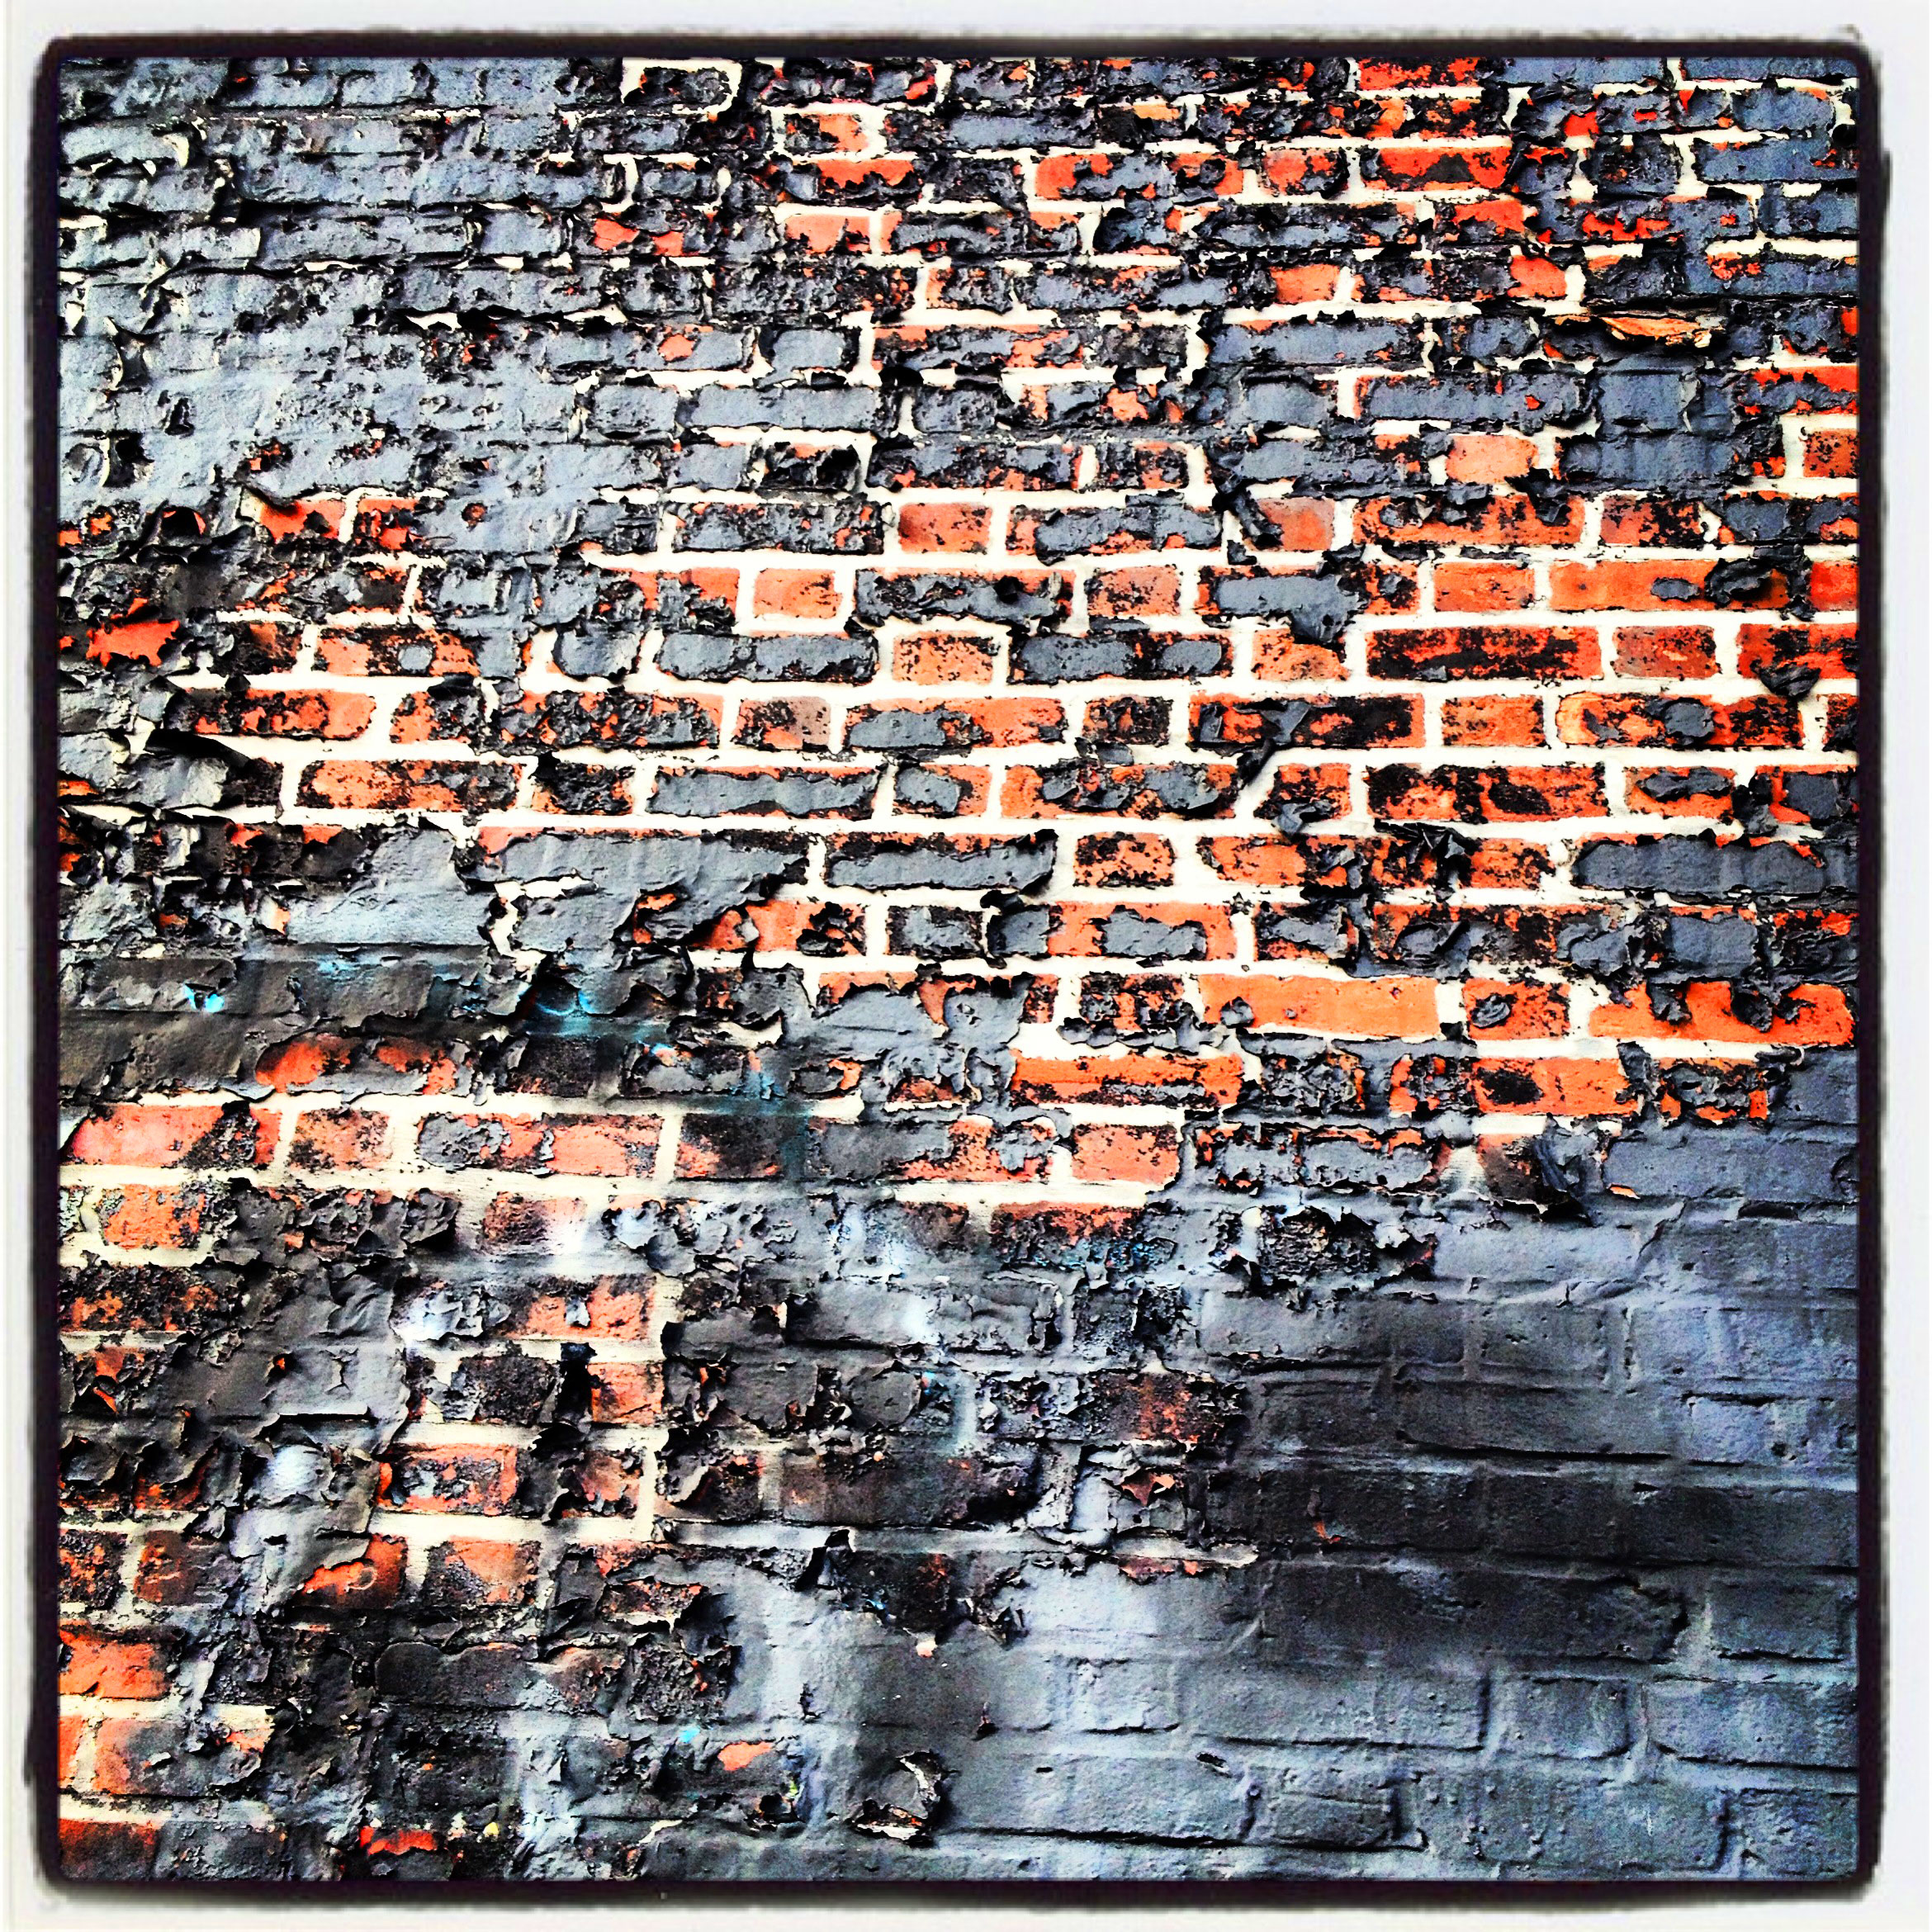 BROOKLYN BRICK WALL NEW YORK